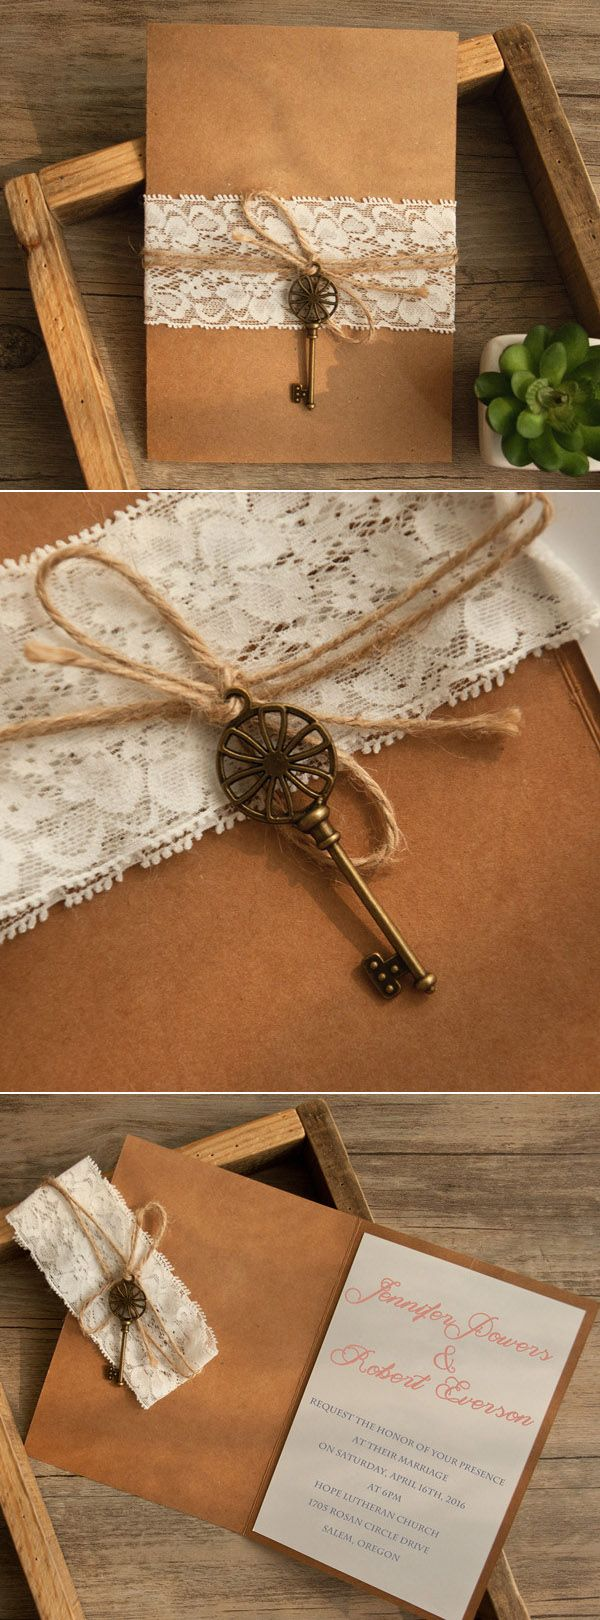 rustic-lace-folded-wedding-invitations-with-vintage-keys-EWLS057